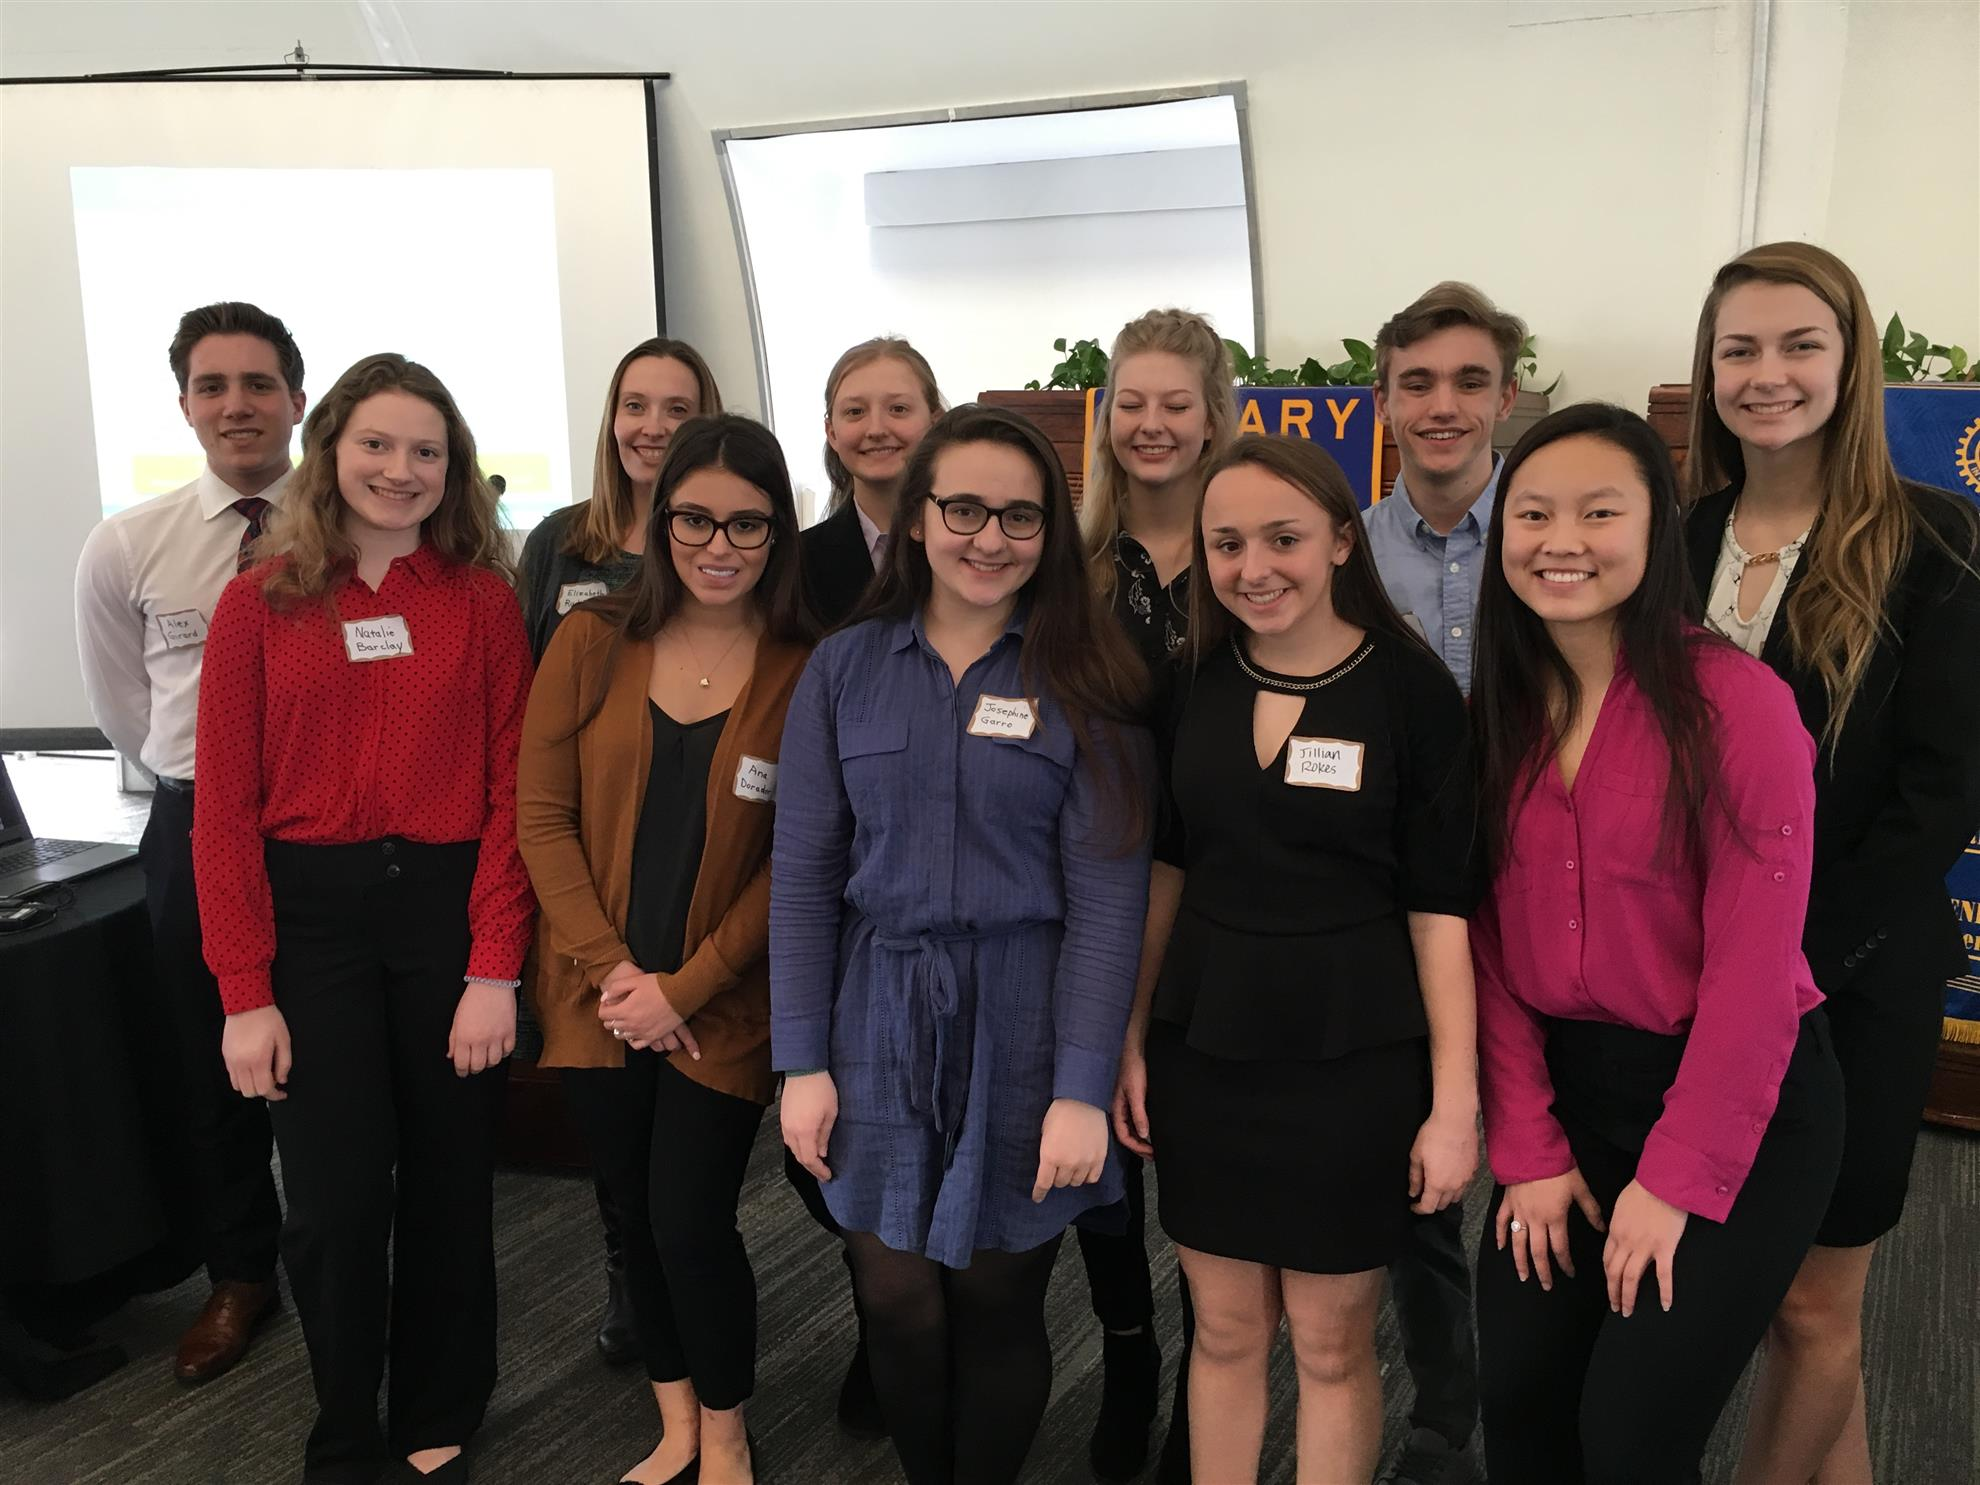 The Future Business Leaders of America from Skutt Catholic High School  visited Rotary, namely: Ana Dorador, Katie Belfiore, Caleb Sudbeck, Andi  Sims, ...